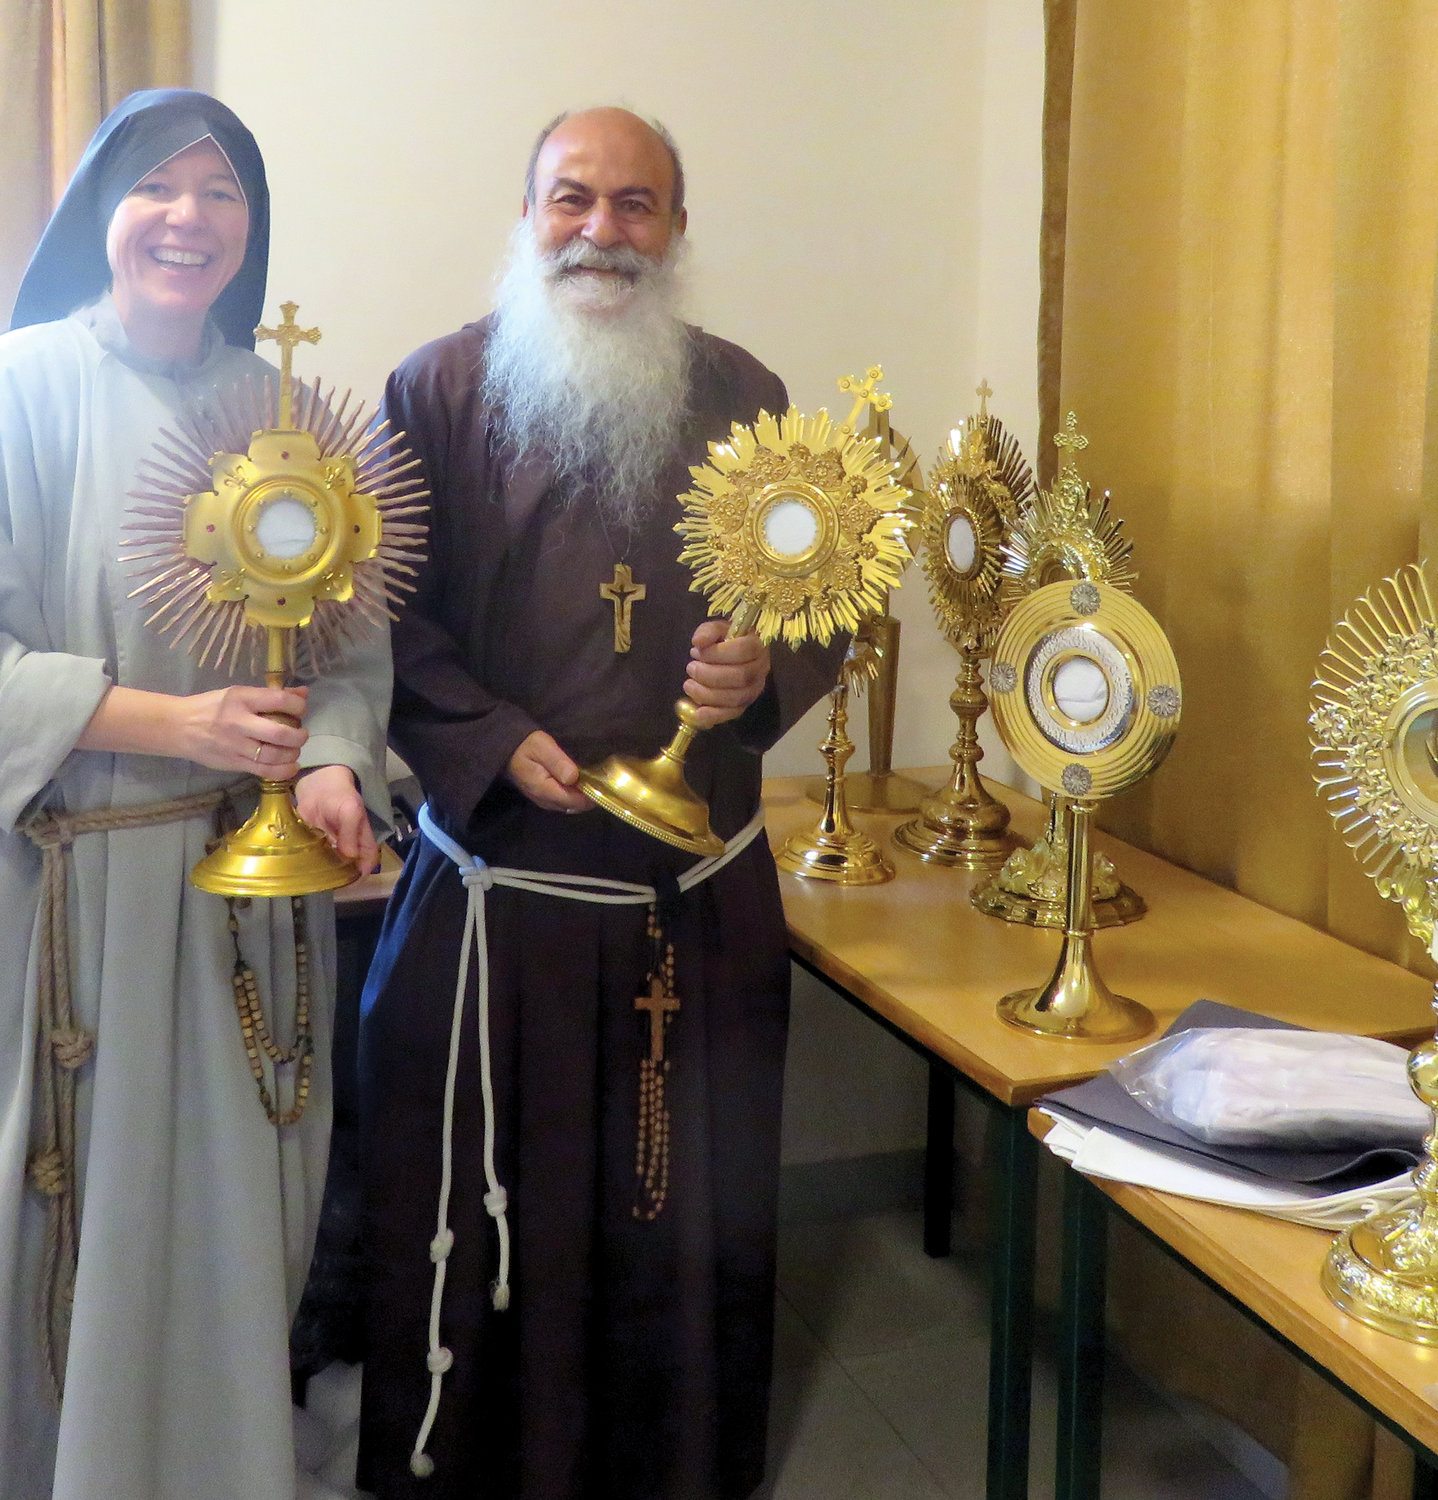 Mother Clare Matthias, C.F.R., community servant (superior general) of the Franciscan Sisters of the Renewal, and Bishop Angelo Pagano, O.F.M. Cap., Vicar Apostolic of Harar, hold monstrances delivered from New York to the Apostolic Vicariate of Harar in Ethiopia.